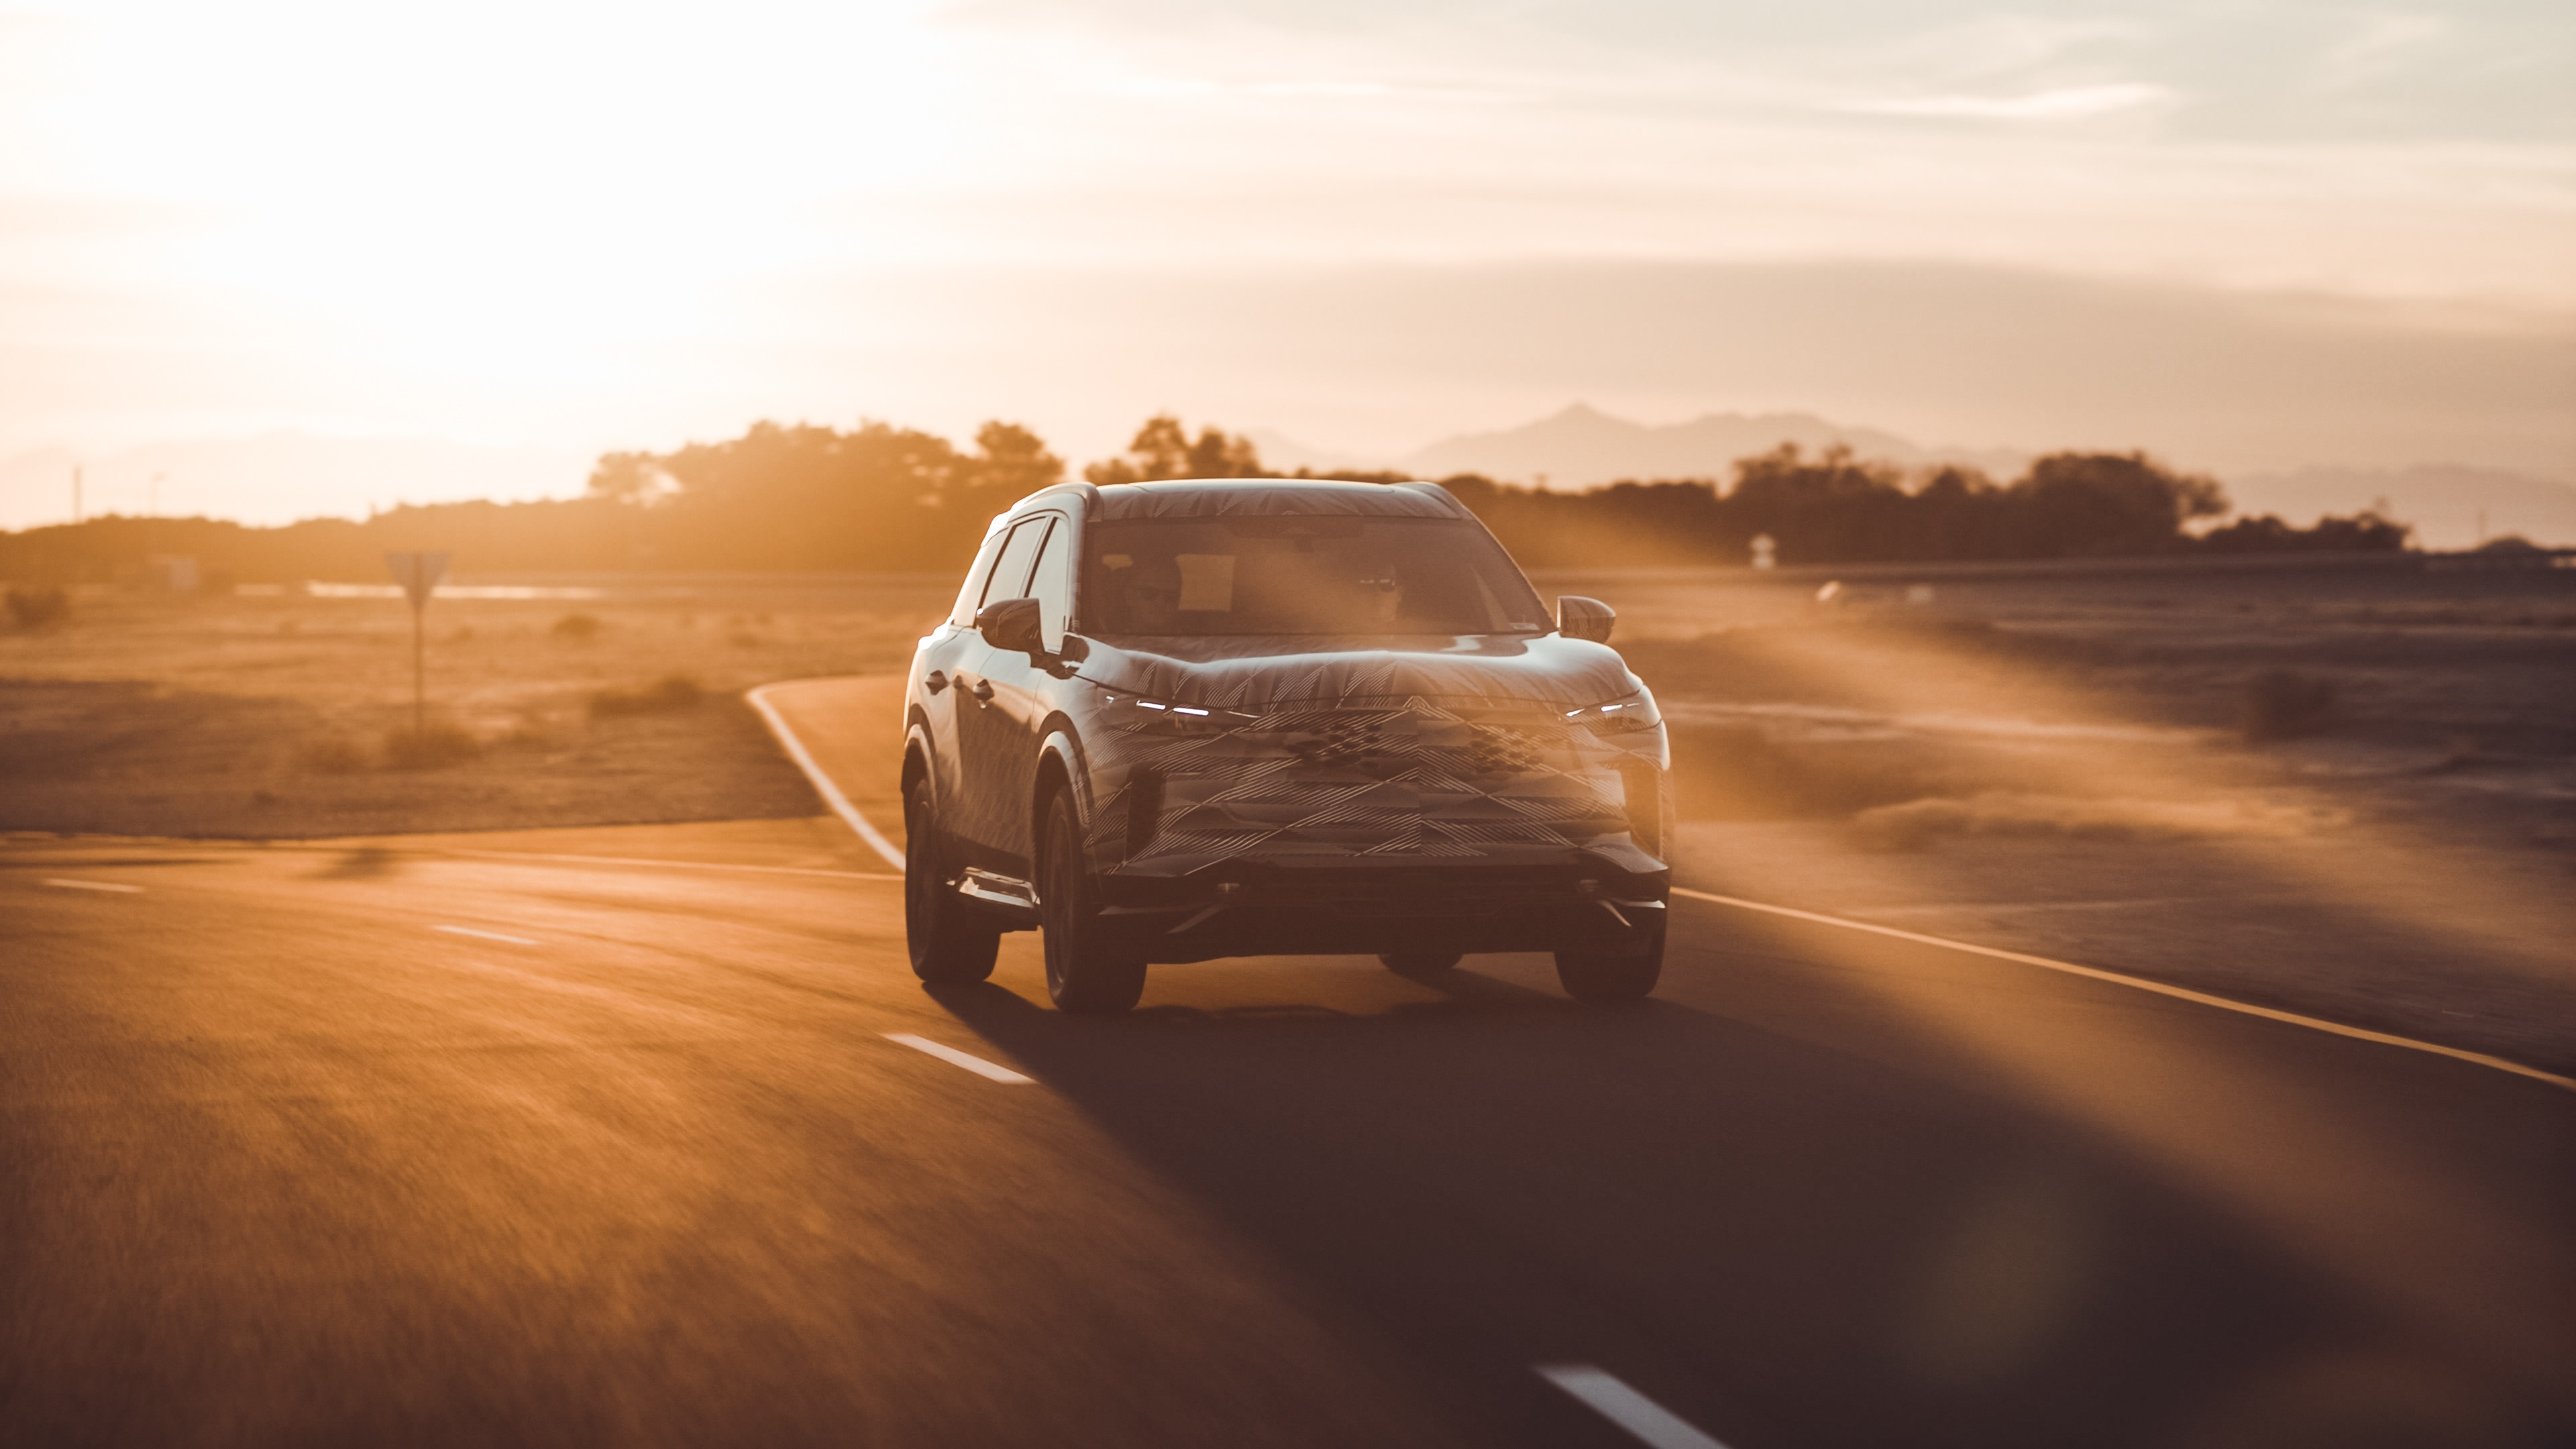 All-new 2022 INFINITI QX60 introduces  new 9-speed automatic transmission, improved refinement